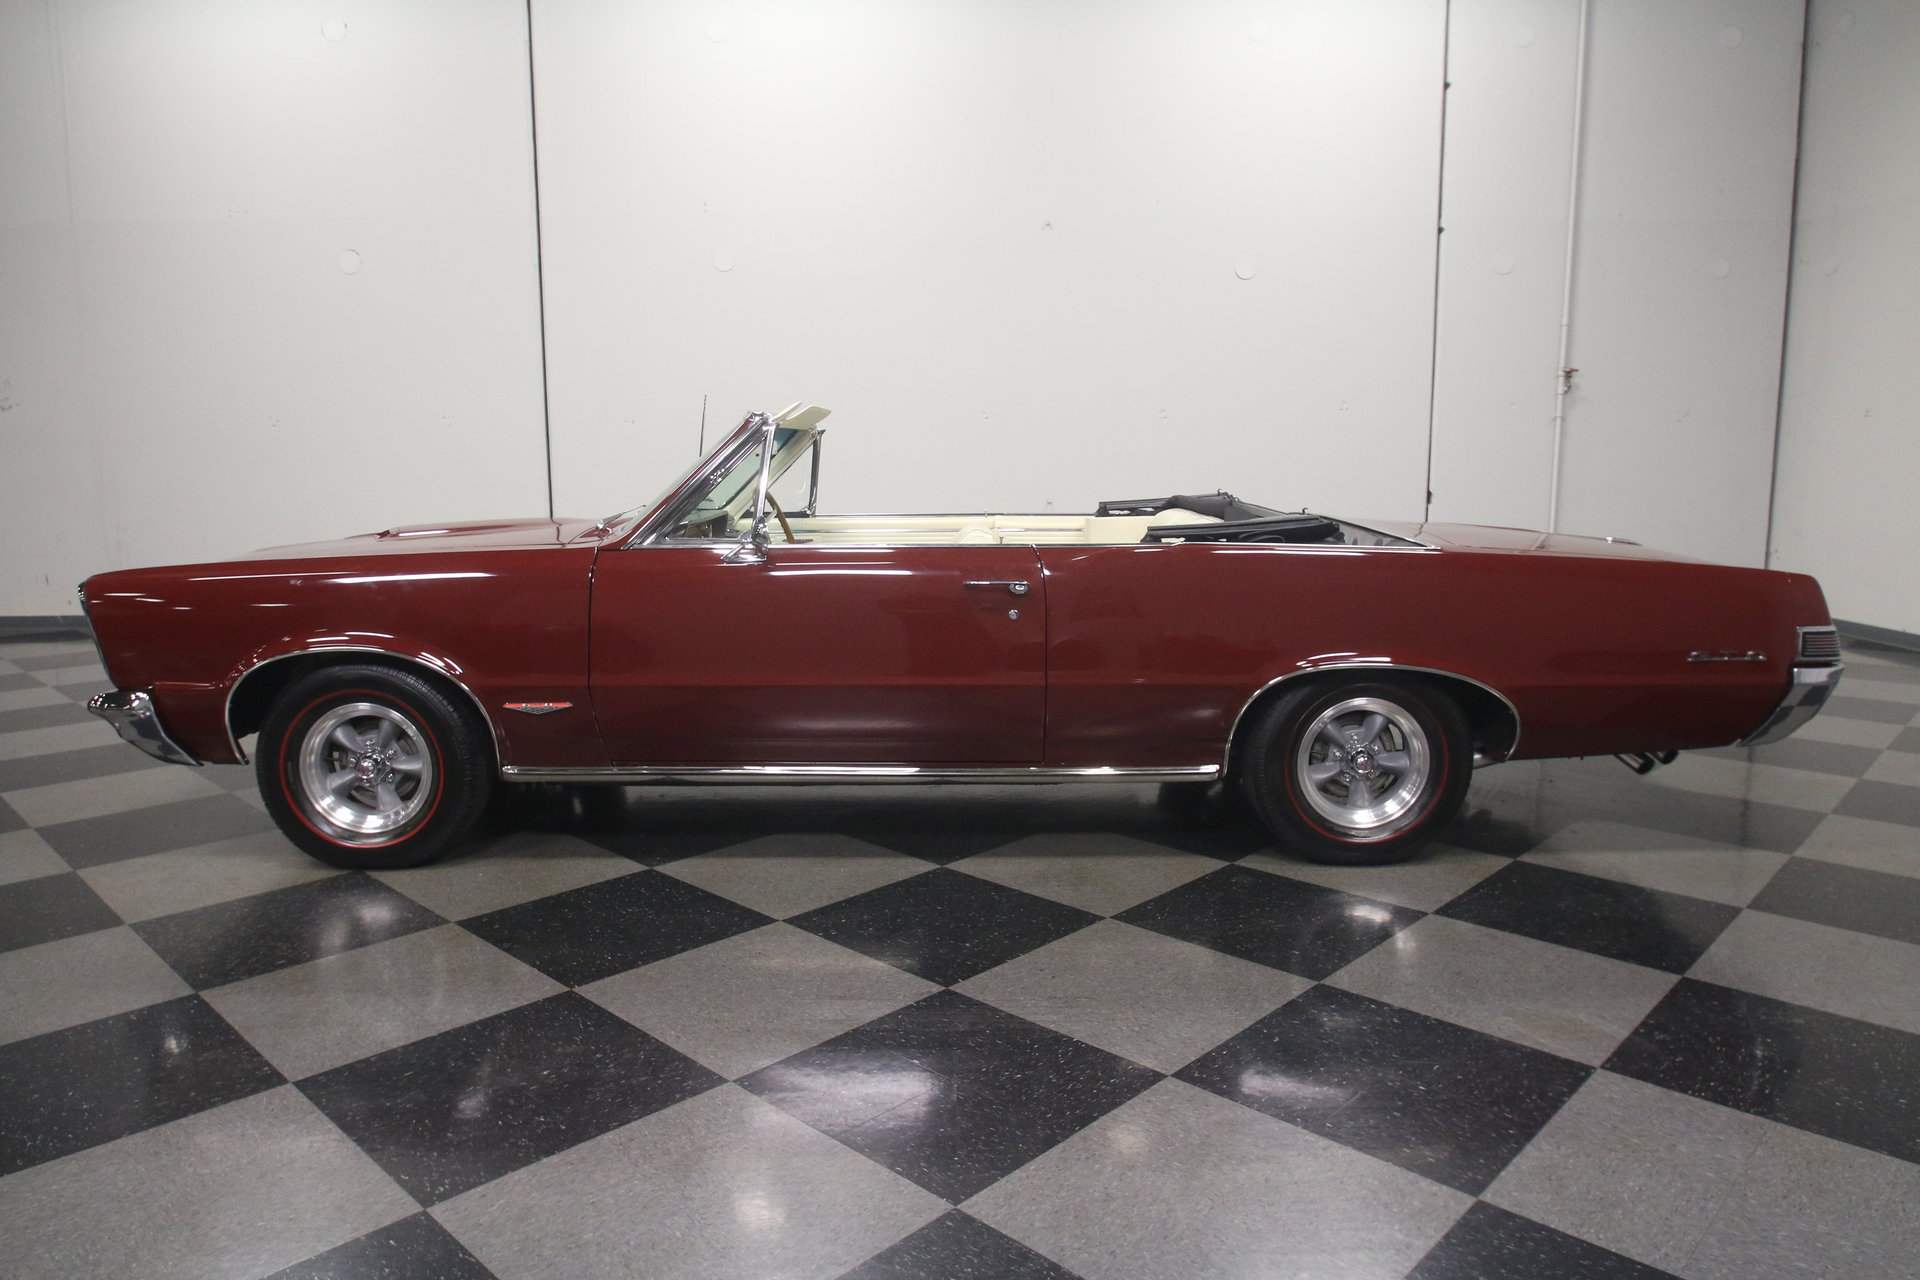 1965 Pontiac Gto Streetside Classics The Nations Trusted Phs Documented 4 Speed Tri Power 389 Red Black Show More Photos